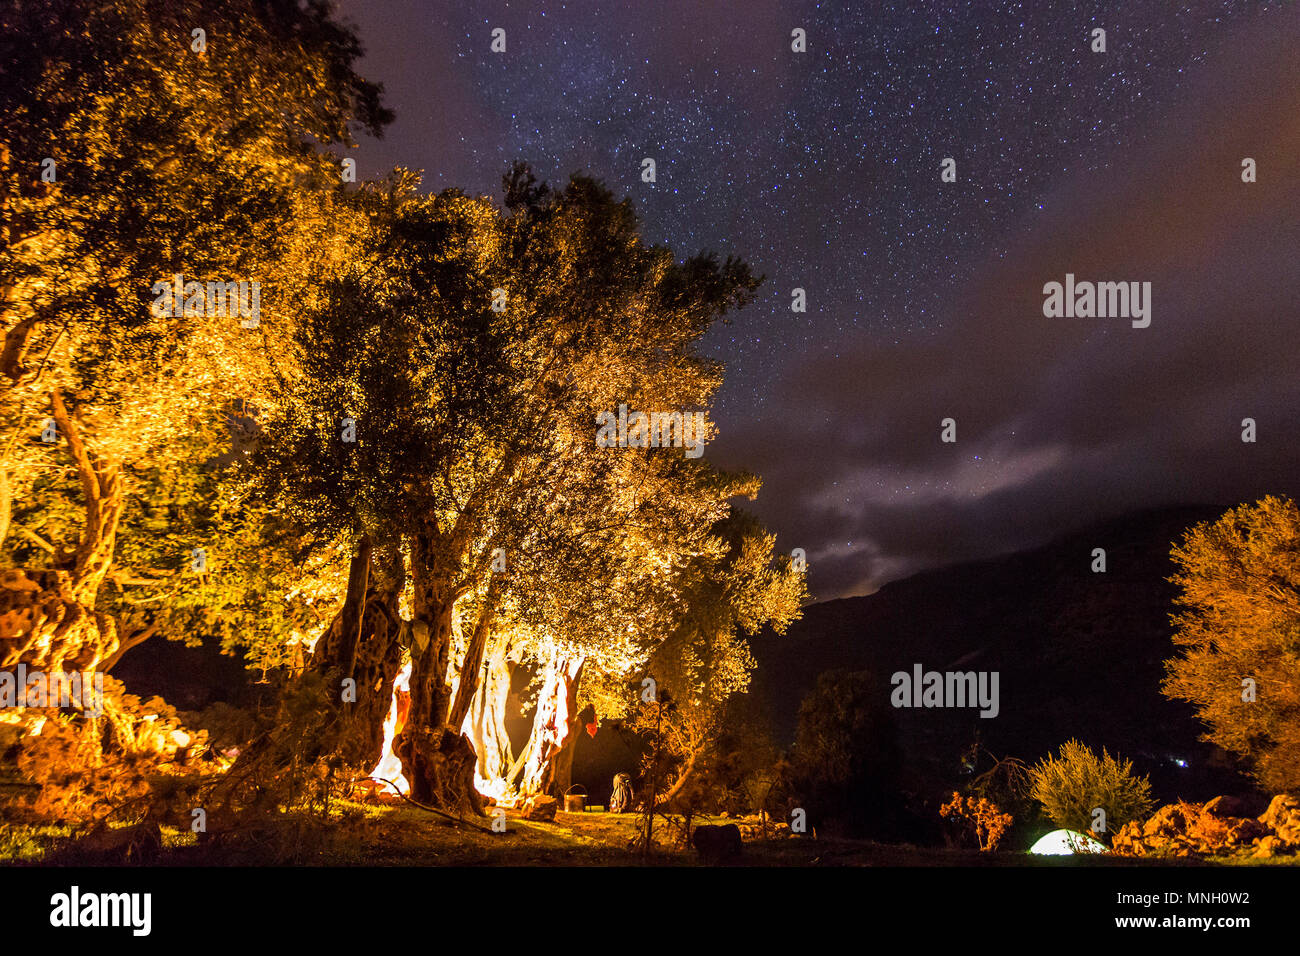 forest with bonfire at night with stars on sky - Stock Image